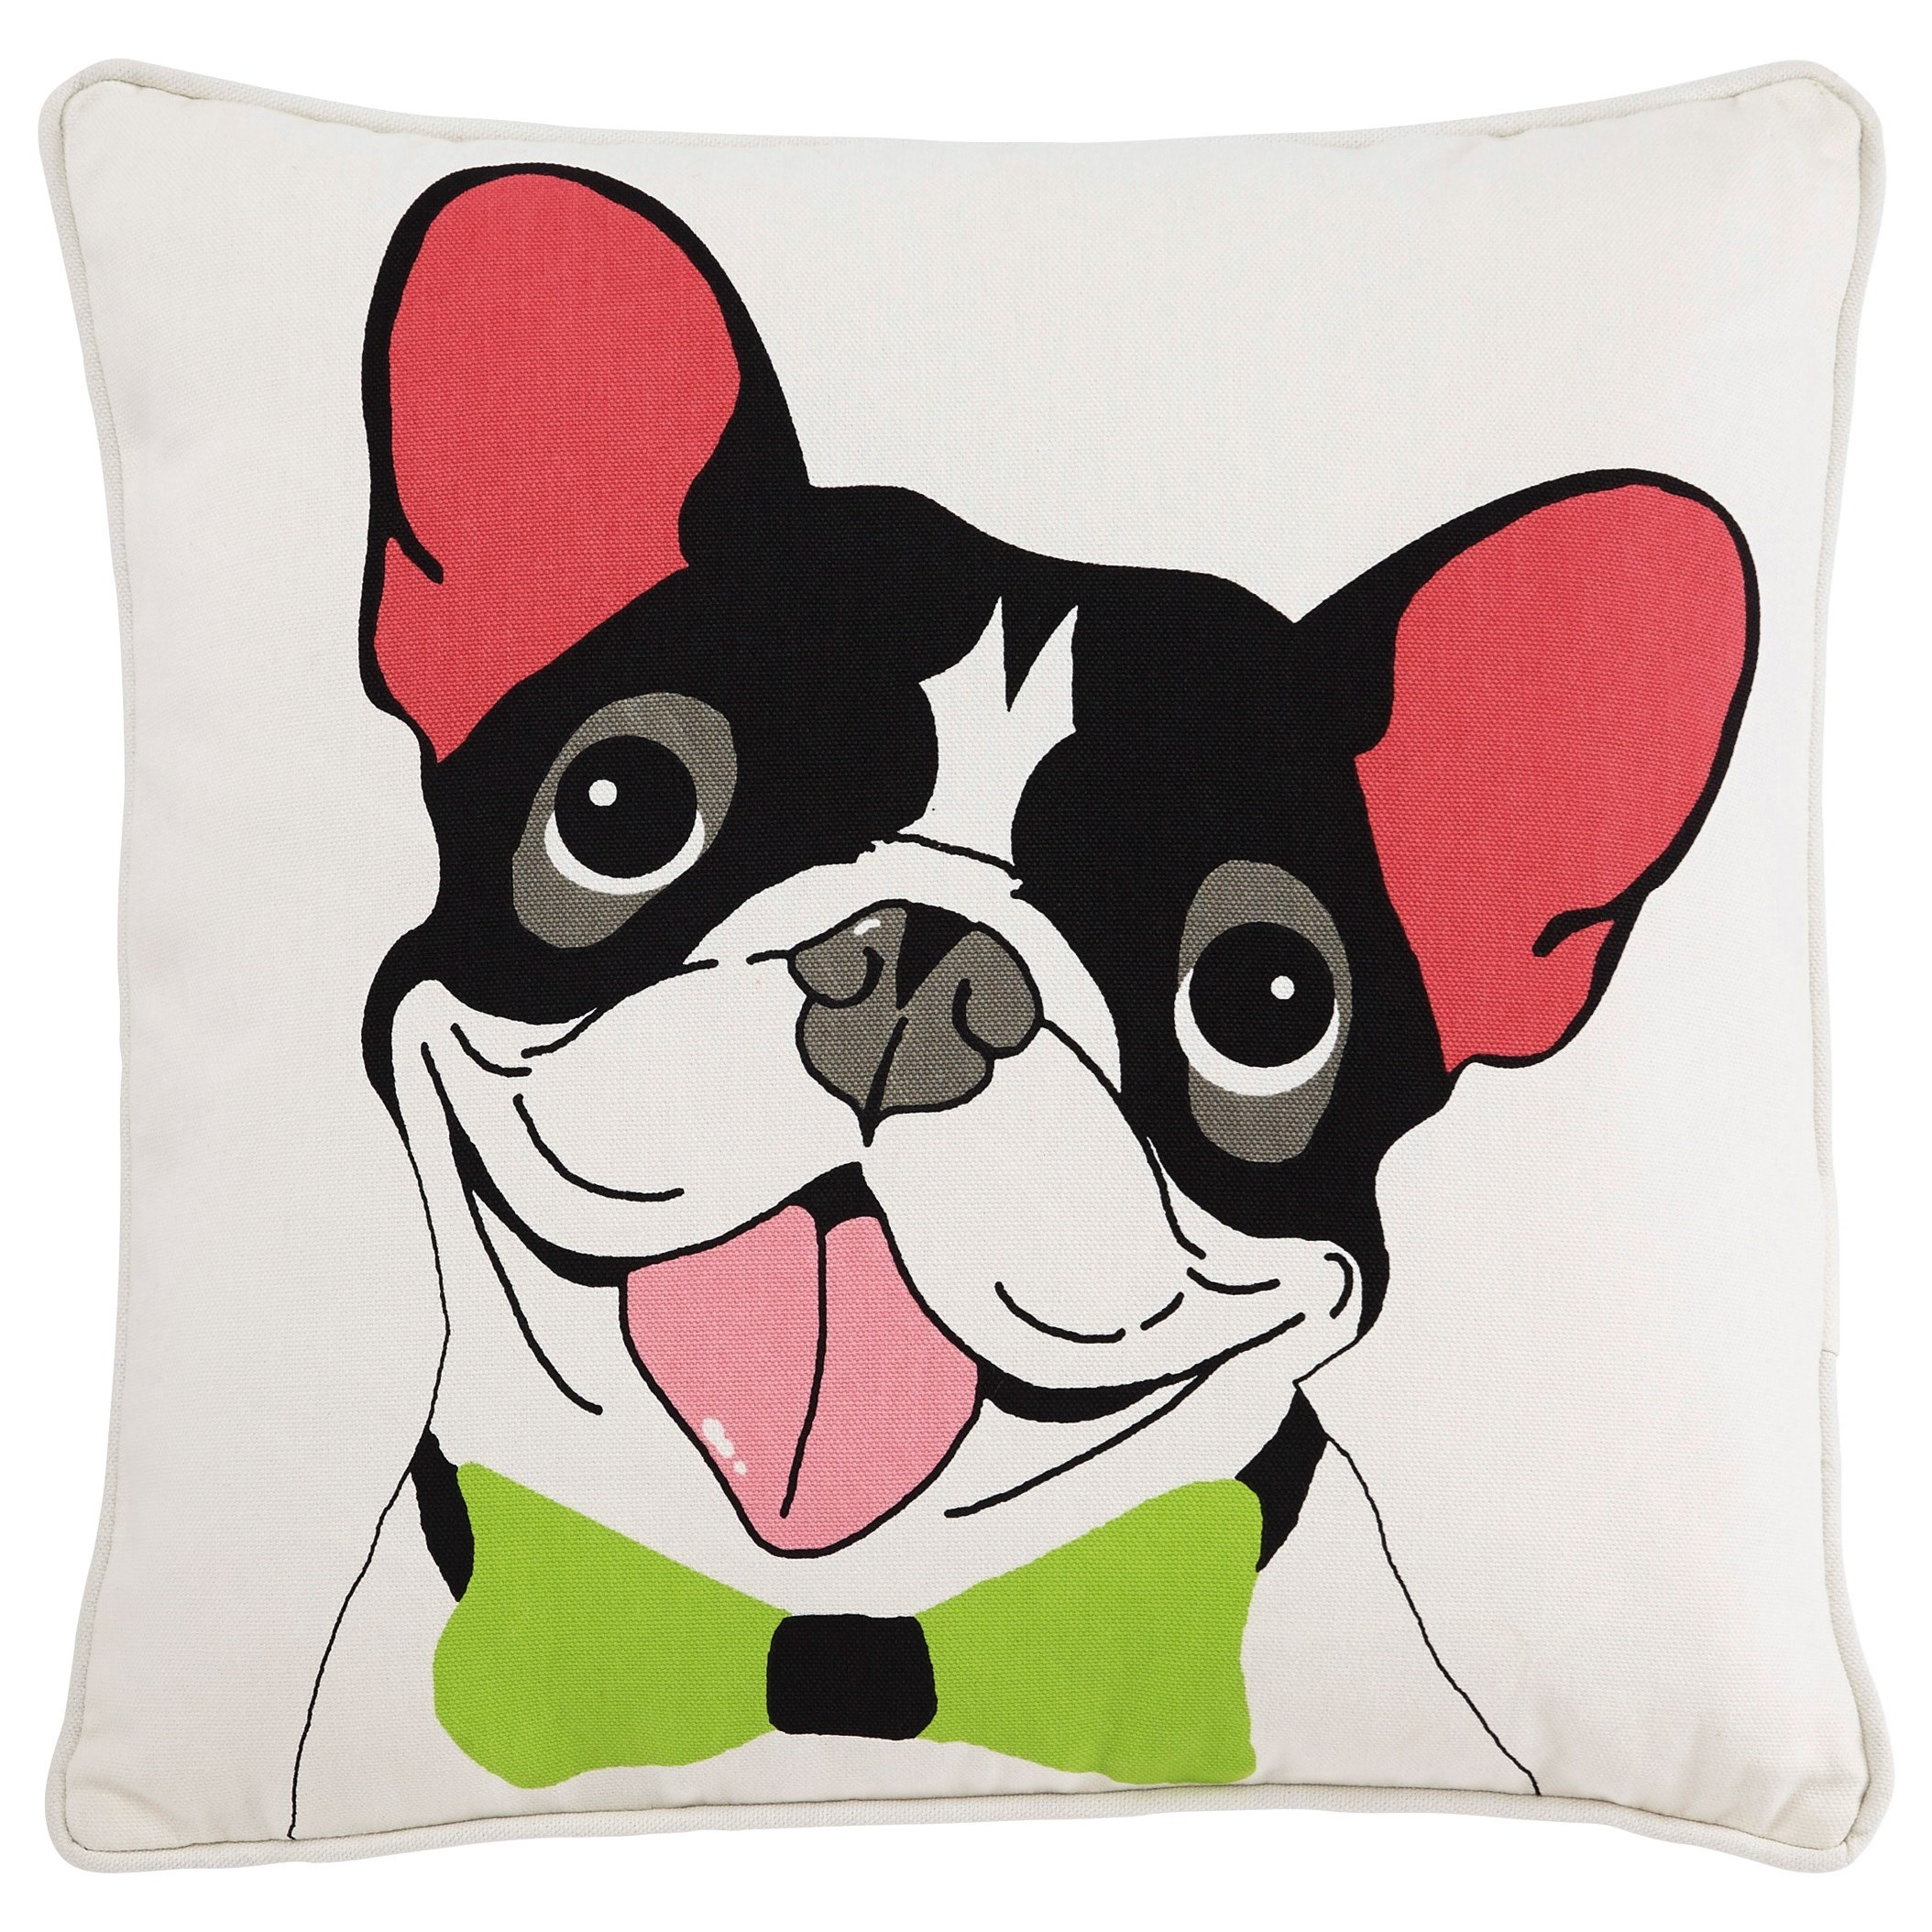 Signature Design by Ashley Pillows Barksdale Multi Pillow - Item Number: A1000681P